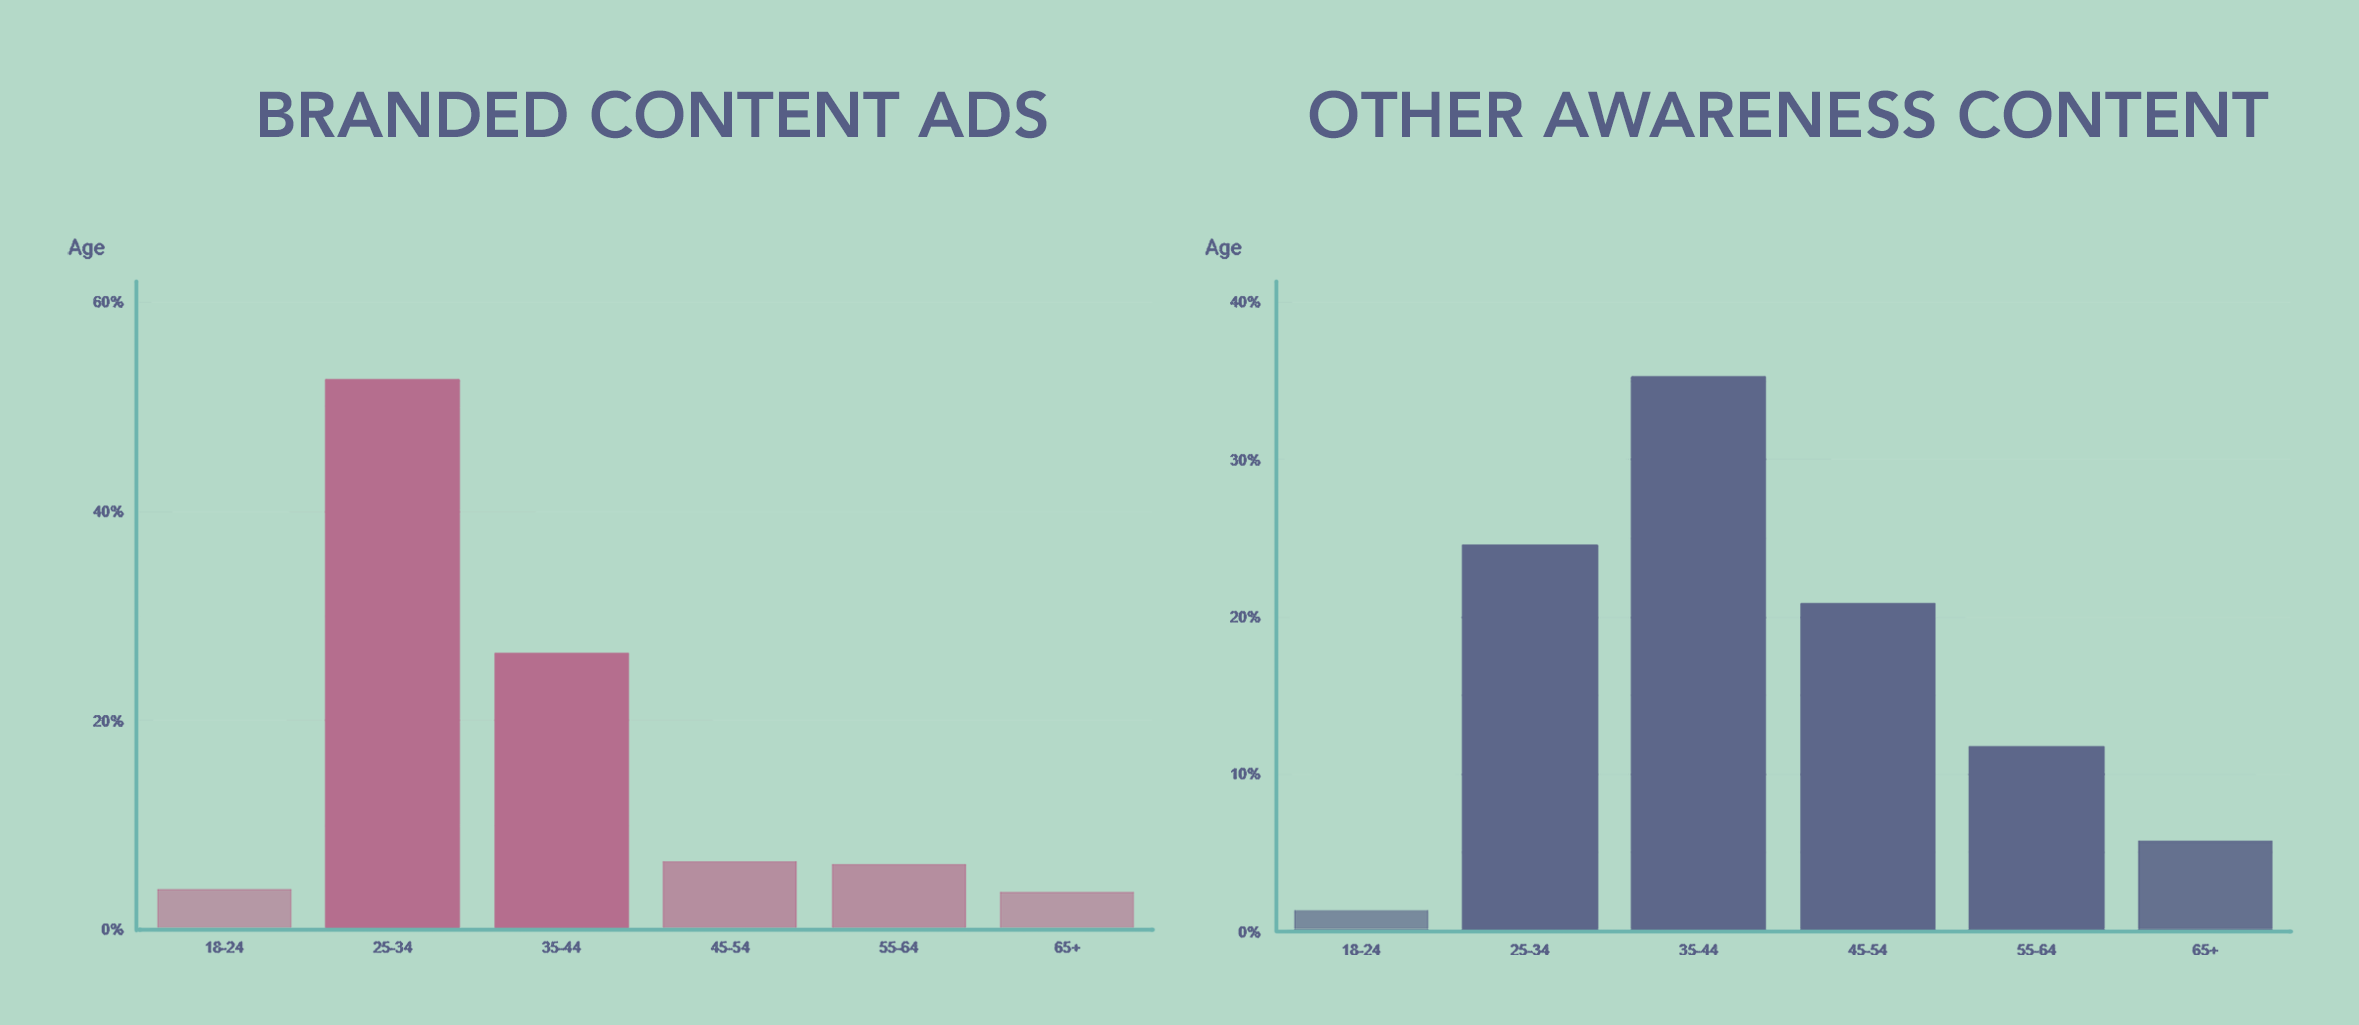 Branded Content Ads - Users